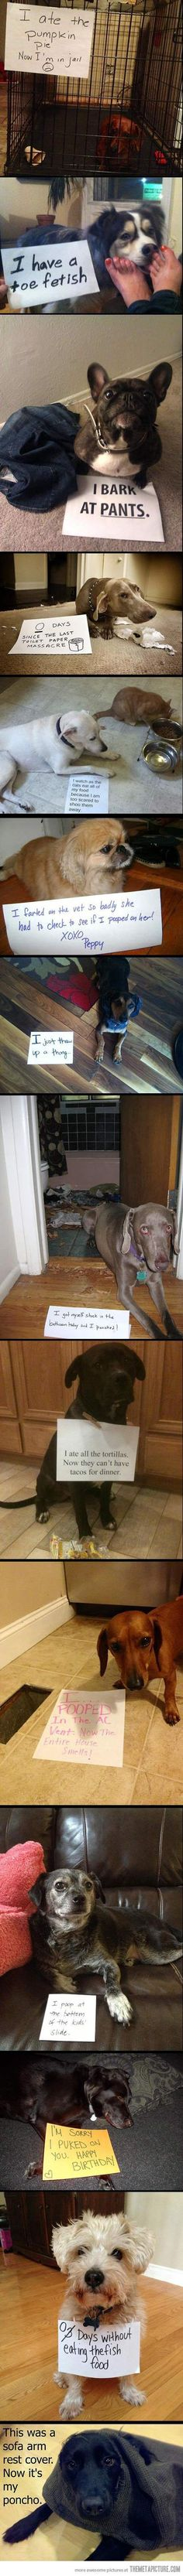 Dog shaming...hilarious!